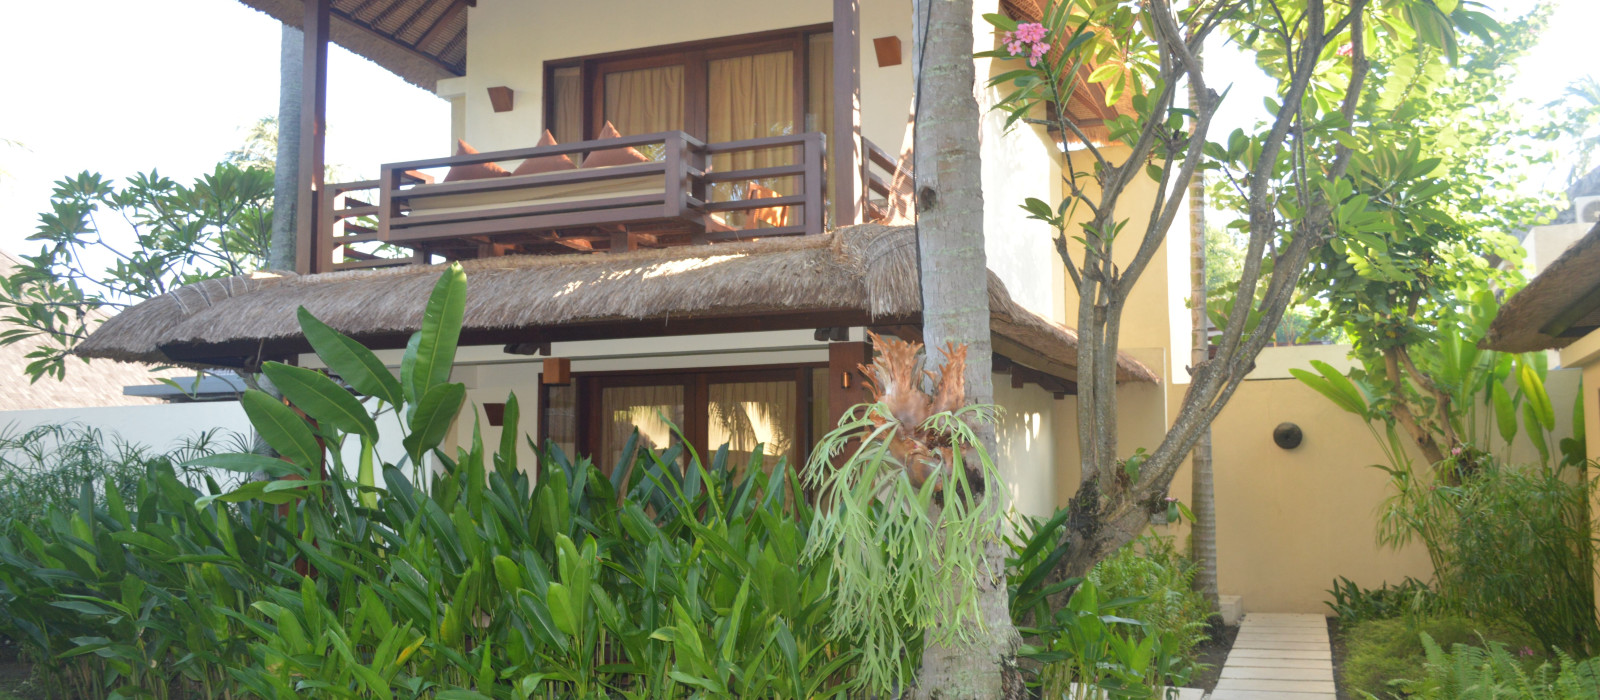 Hotel Qunci Villas Indonesien